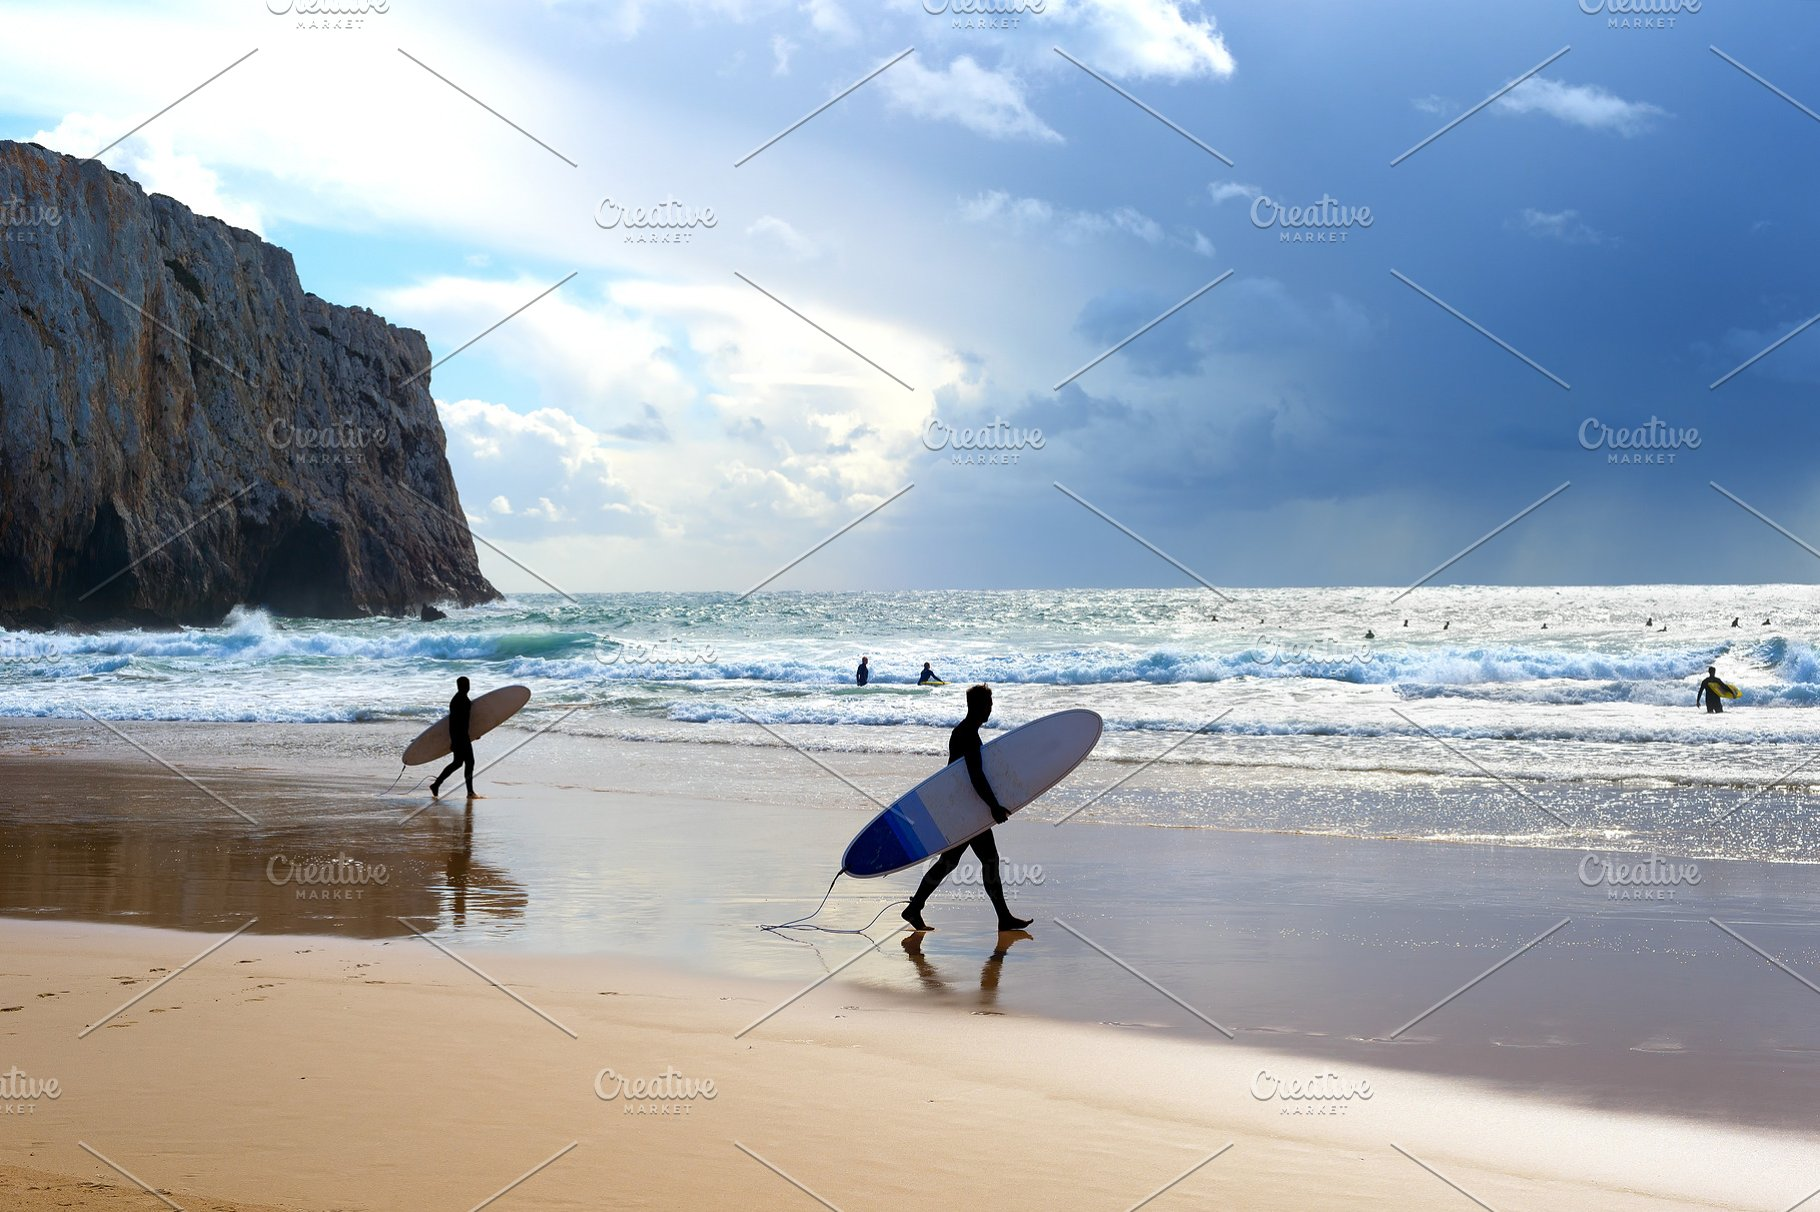 Surfers Surfboards Beach Portugal